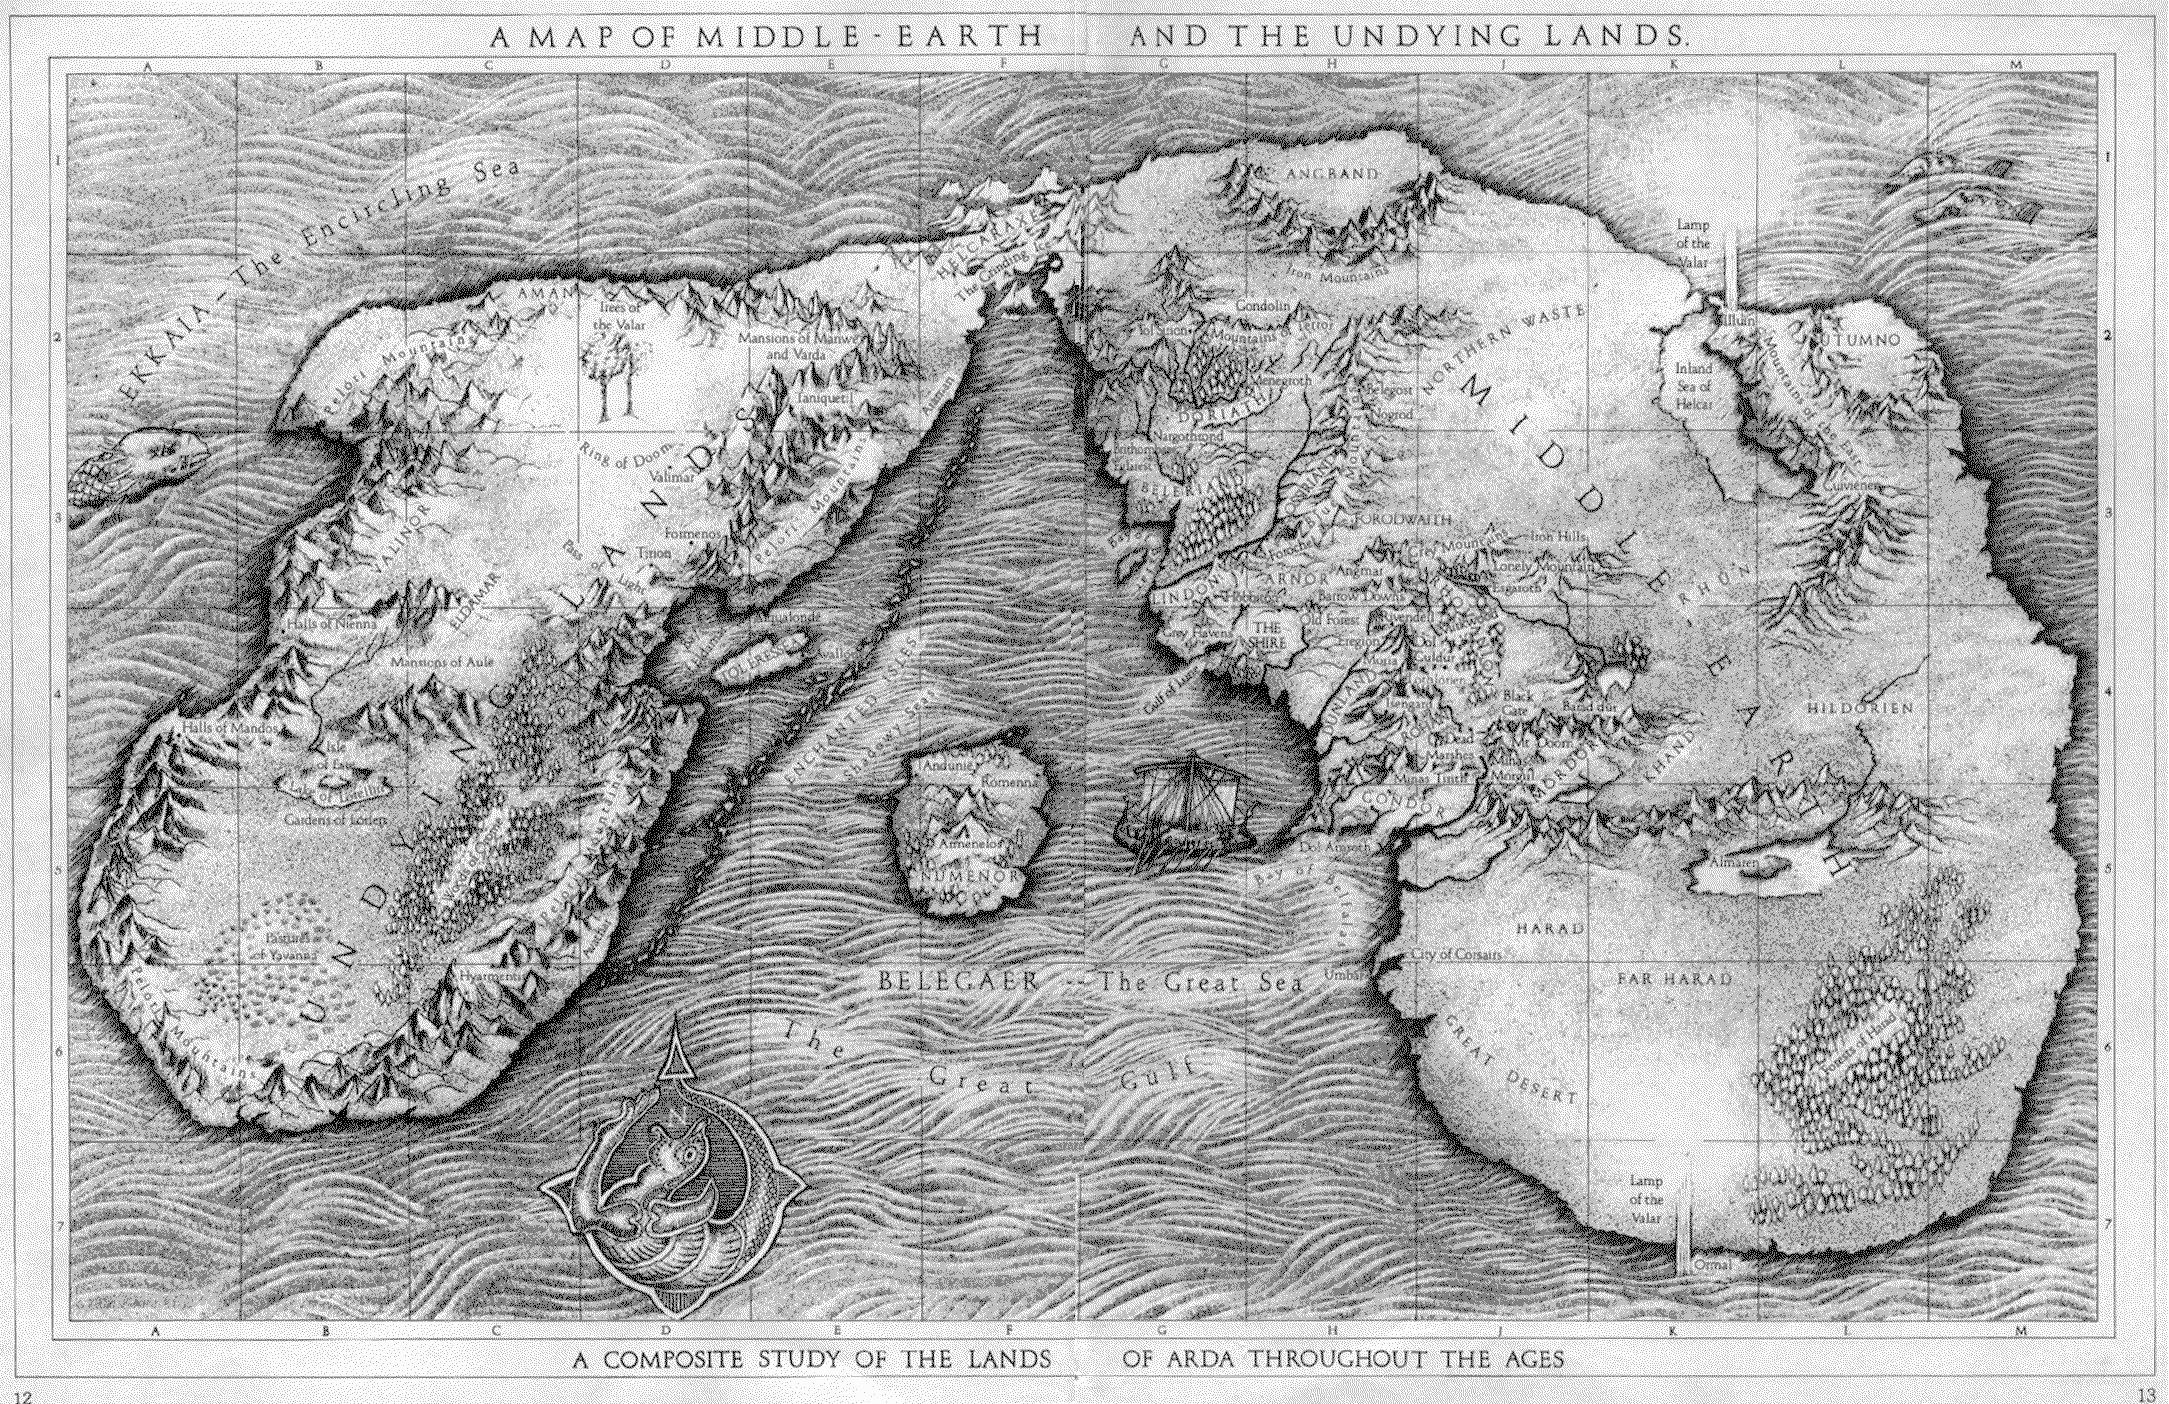 map of numenor, map of forodwaith, map of rohan, map of undying lands tolkien, map of umbar, map of narnia, map of valinor, map of angmar, map of the undying lands, map of marsala, map of angband, map of aman, map of the shire, map of beleriand, map of eriador, map of elena, map of mordor, map of gondor, map of grande river, map of arnor, on map of arda